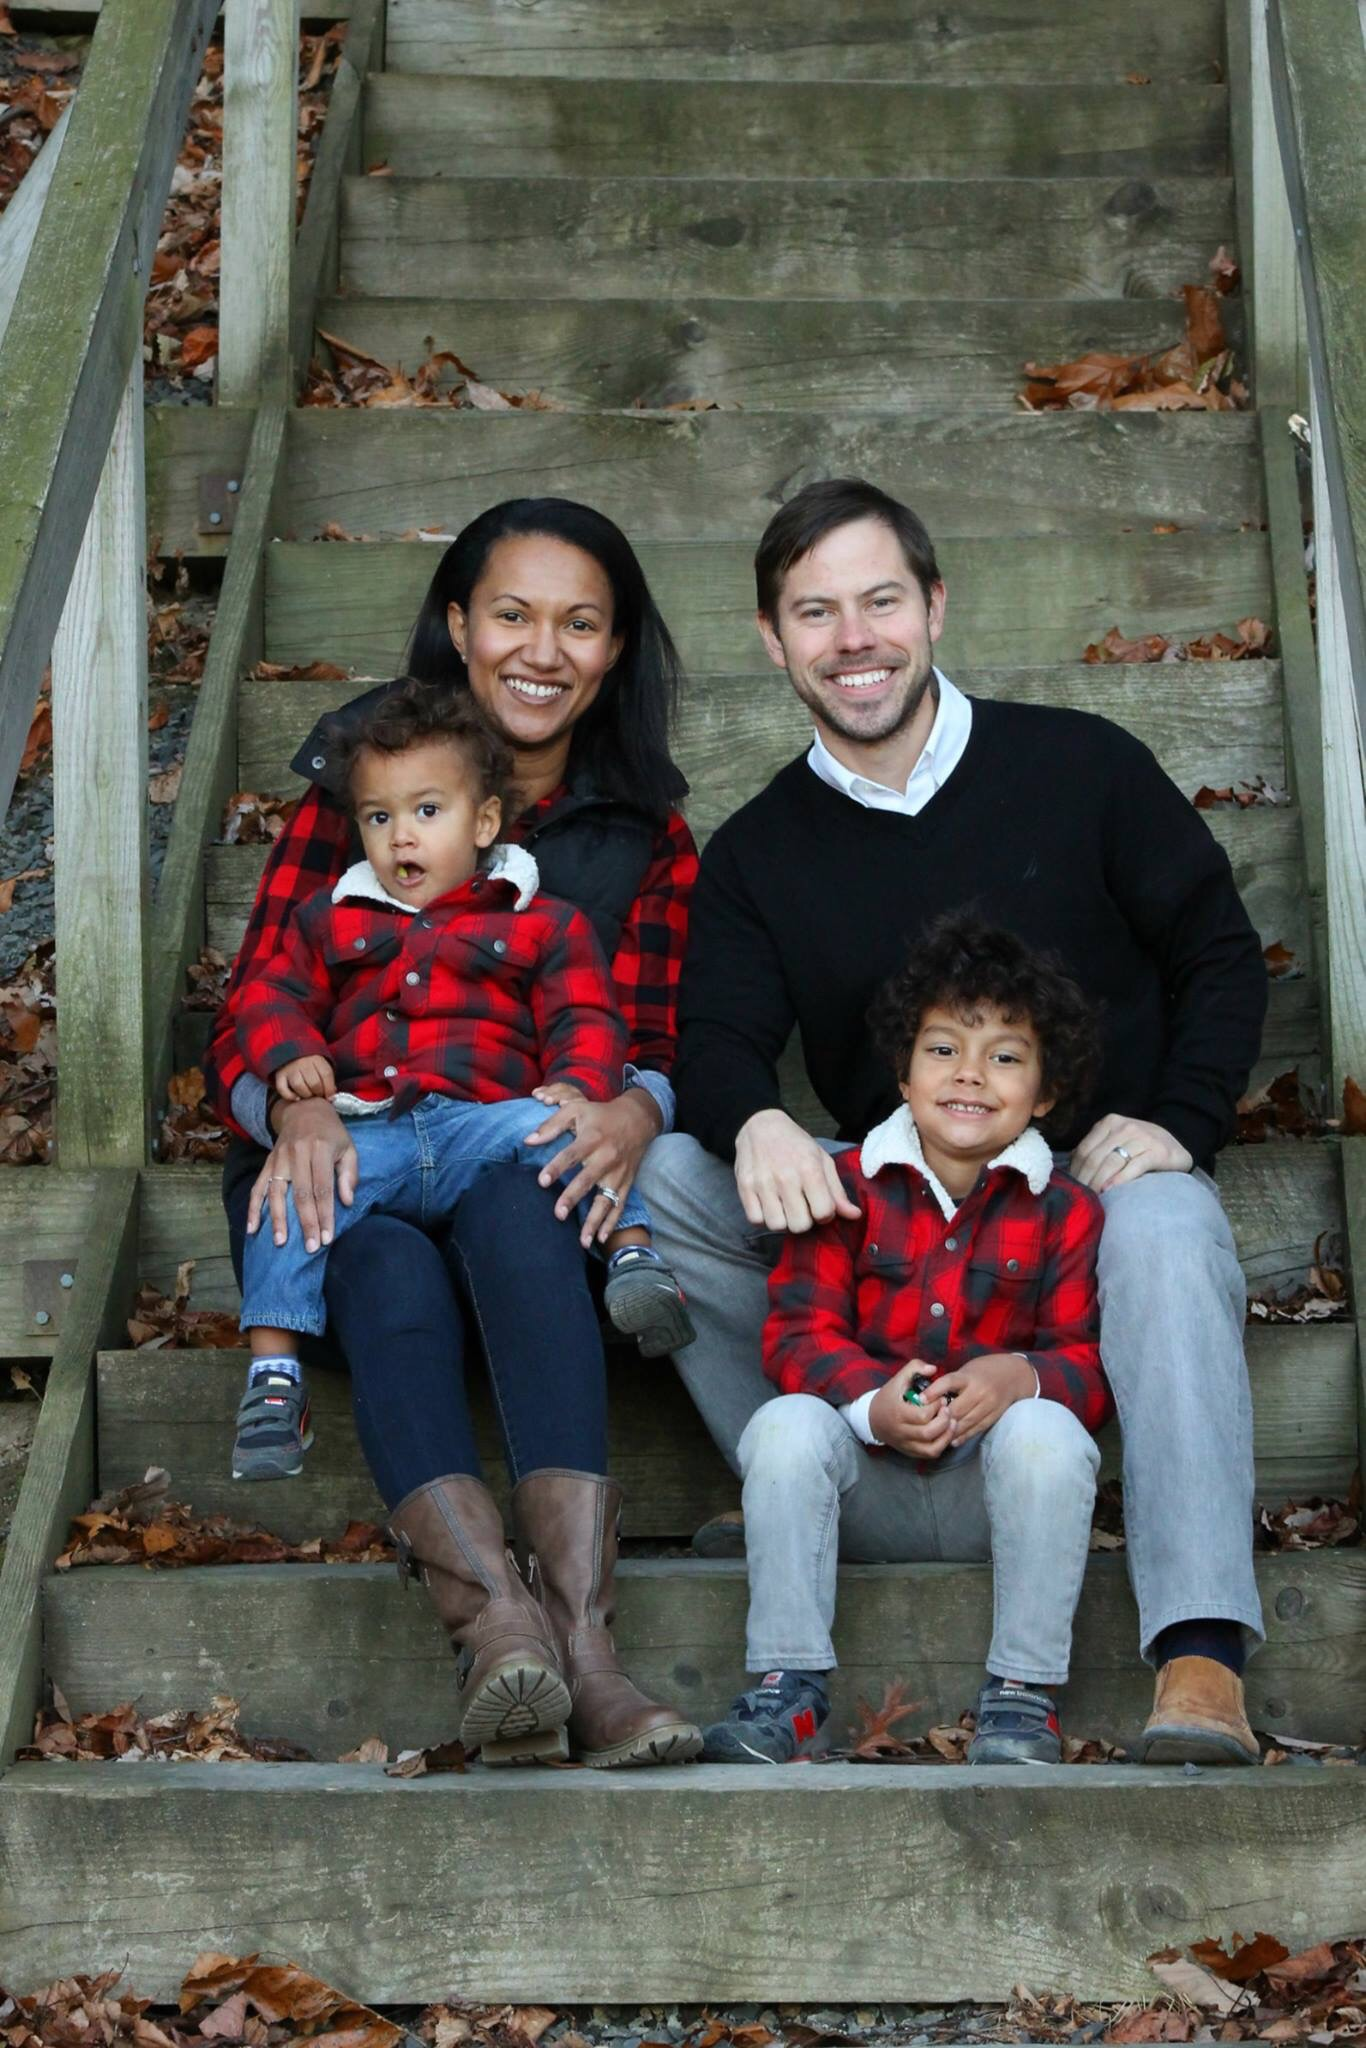 Bryan Suydam DMD and his family - General Dentist in Sewickley, Pennsylvania